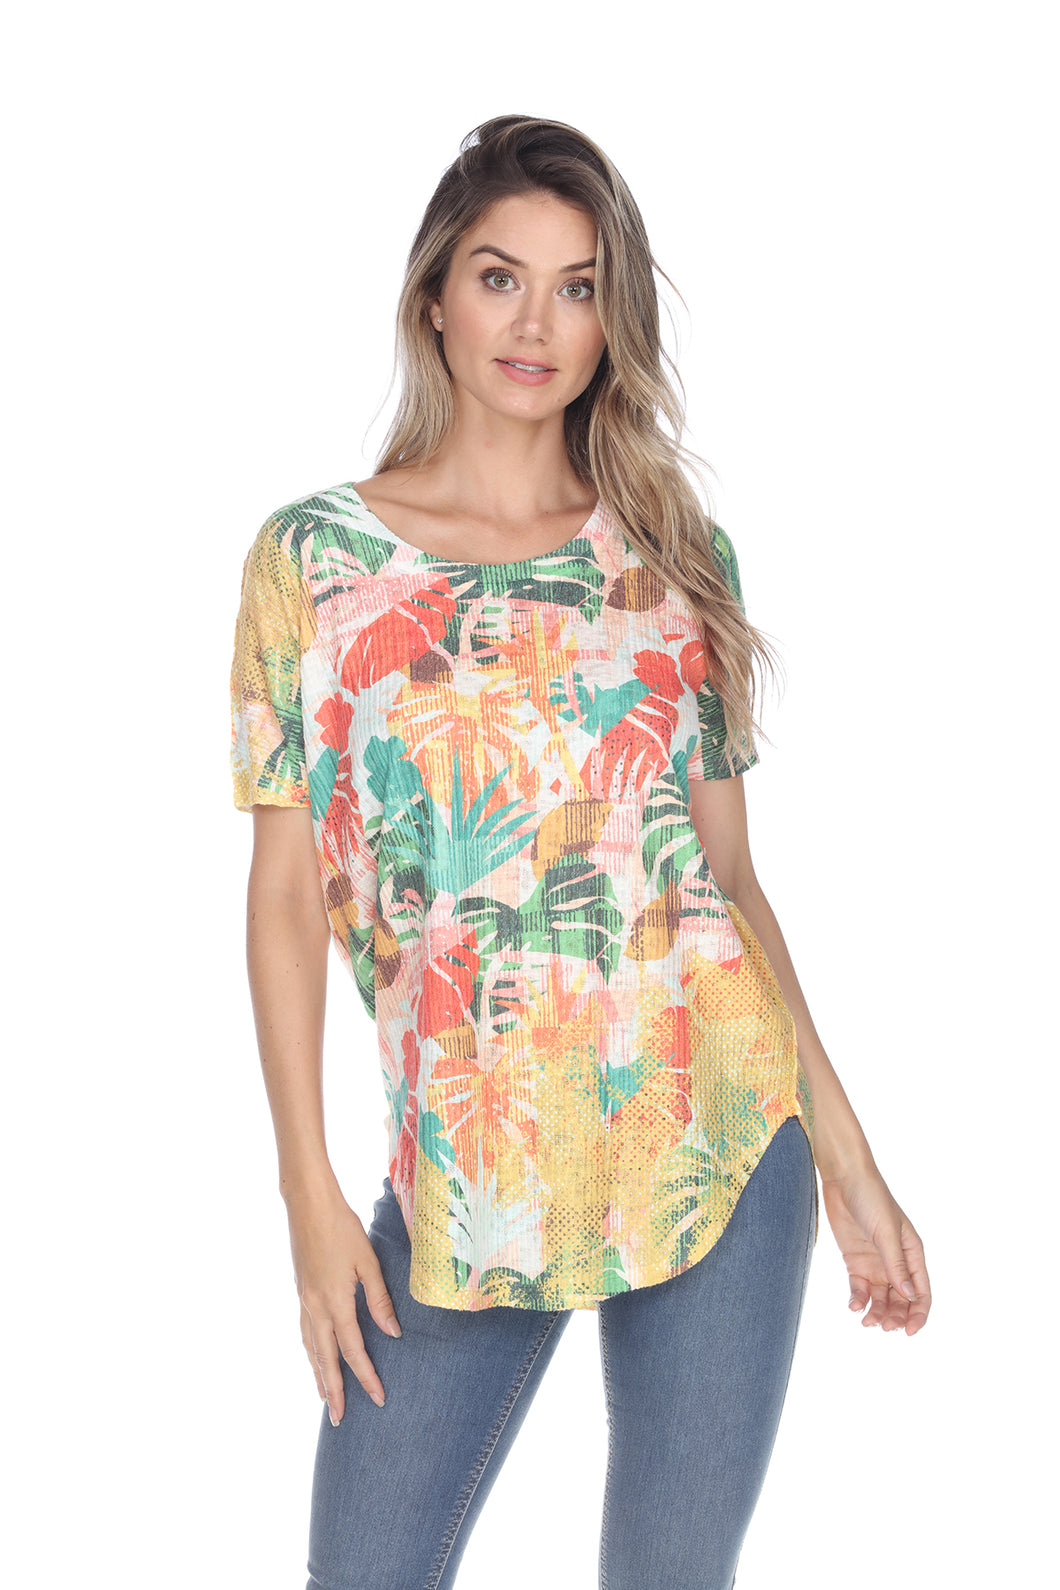 Inoah Tropical Fest Short Sleeve Top - Style T607RBU21